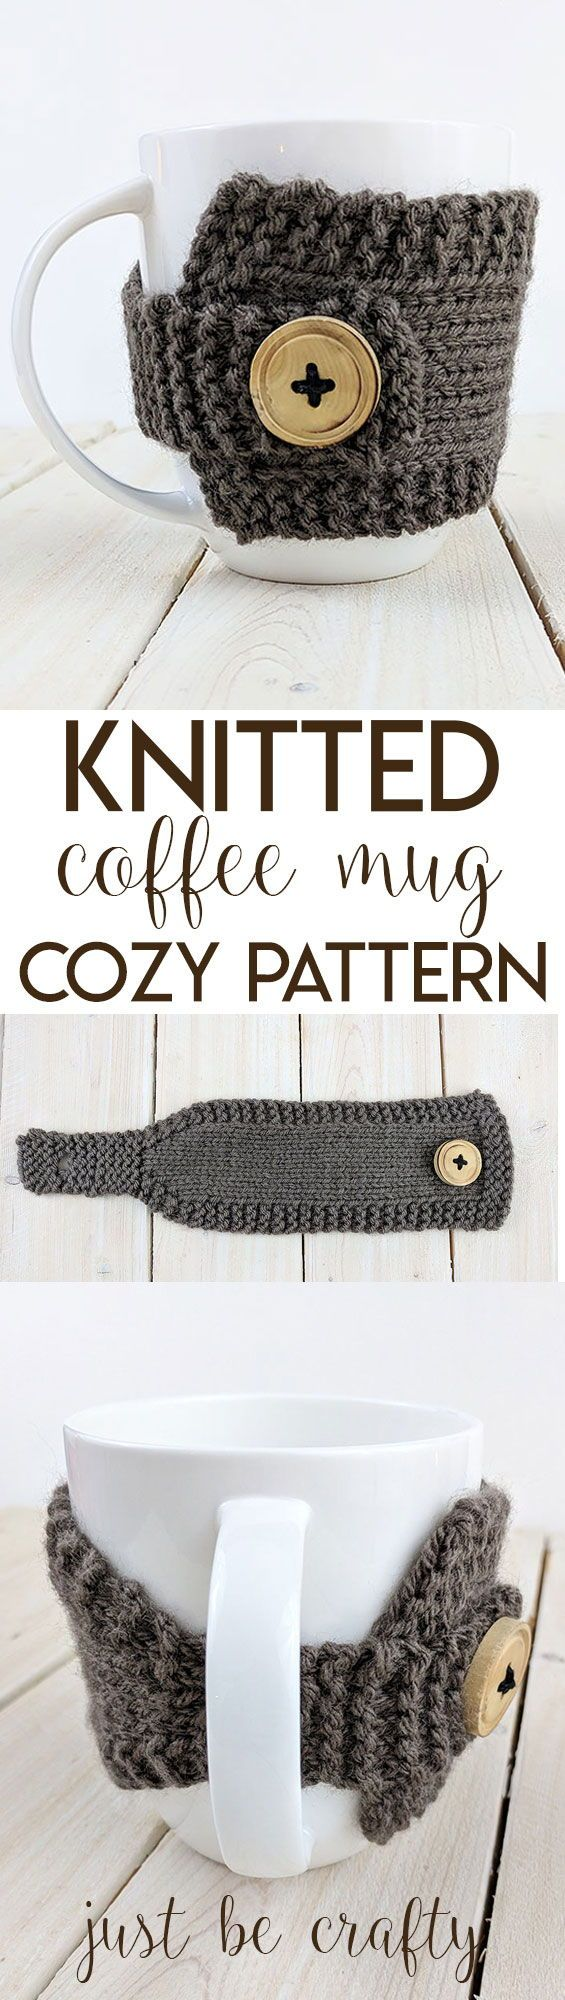 Knitted Coffee Mug Cozy Pattern - Free pattern by   My hobby is ...